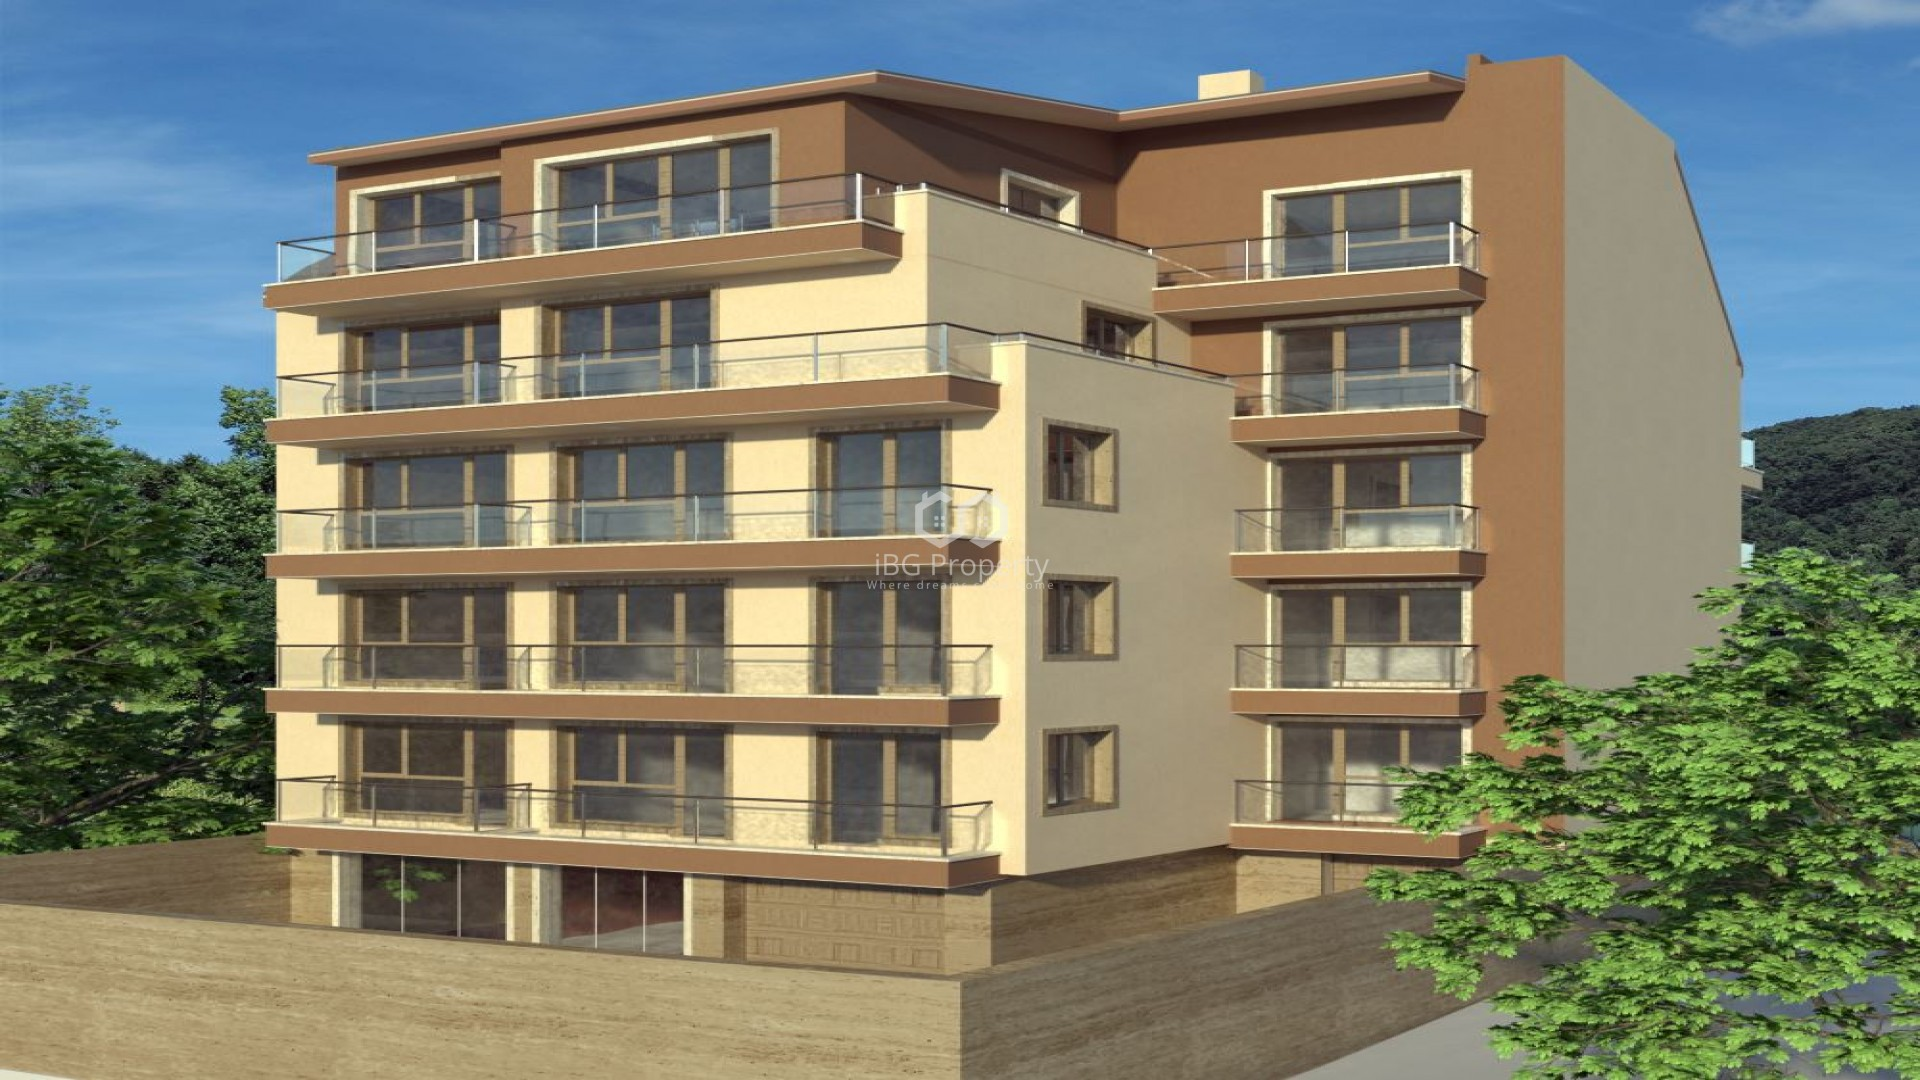 One room apartment Kolhozen pazar Varna 55,80 m2